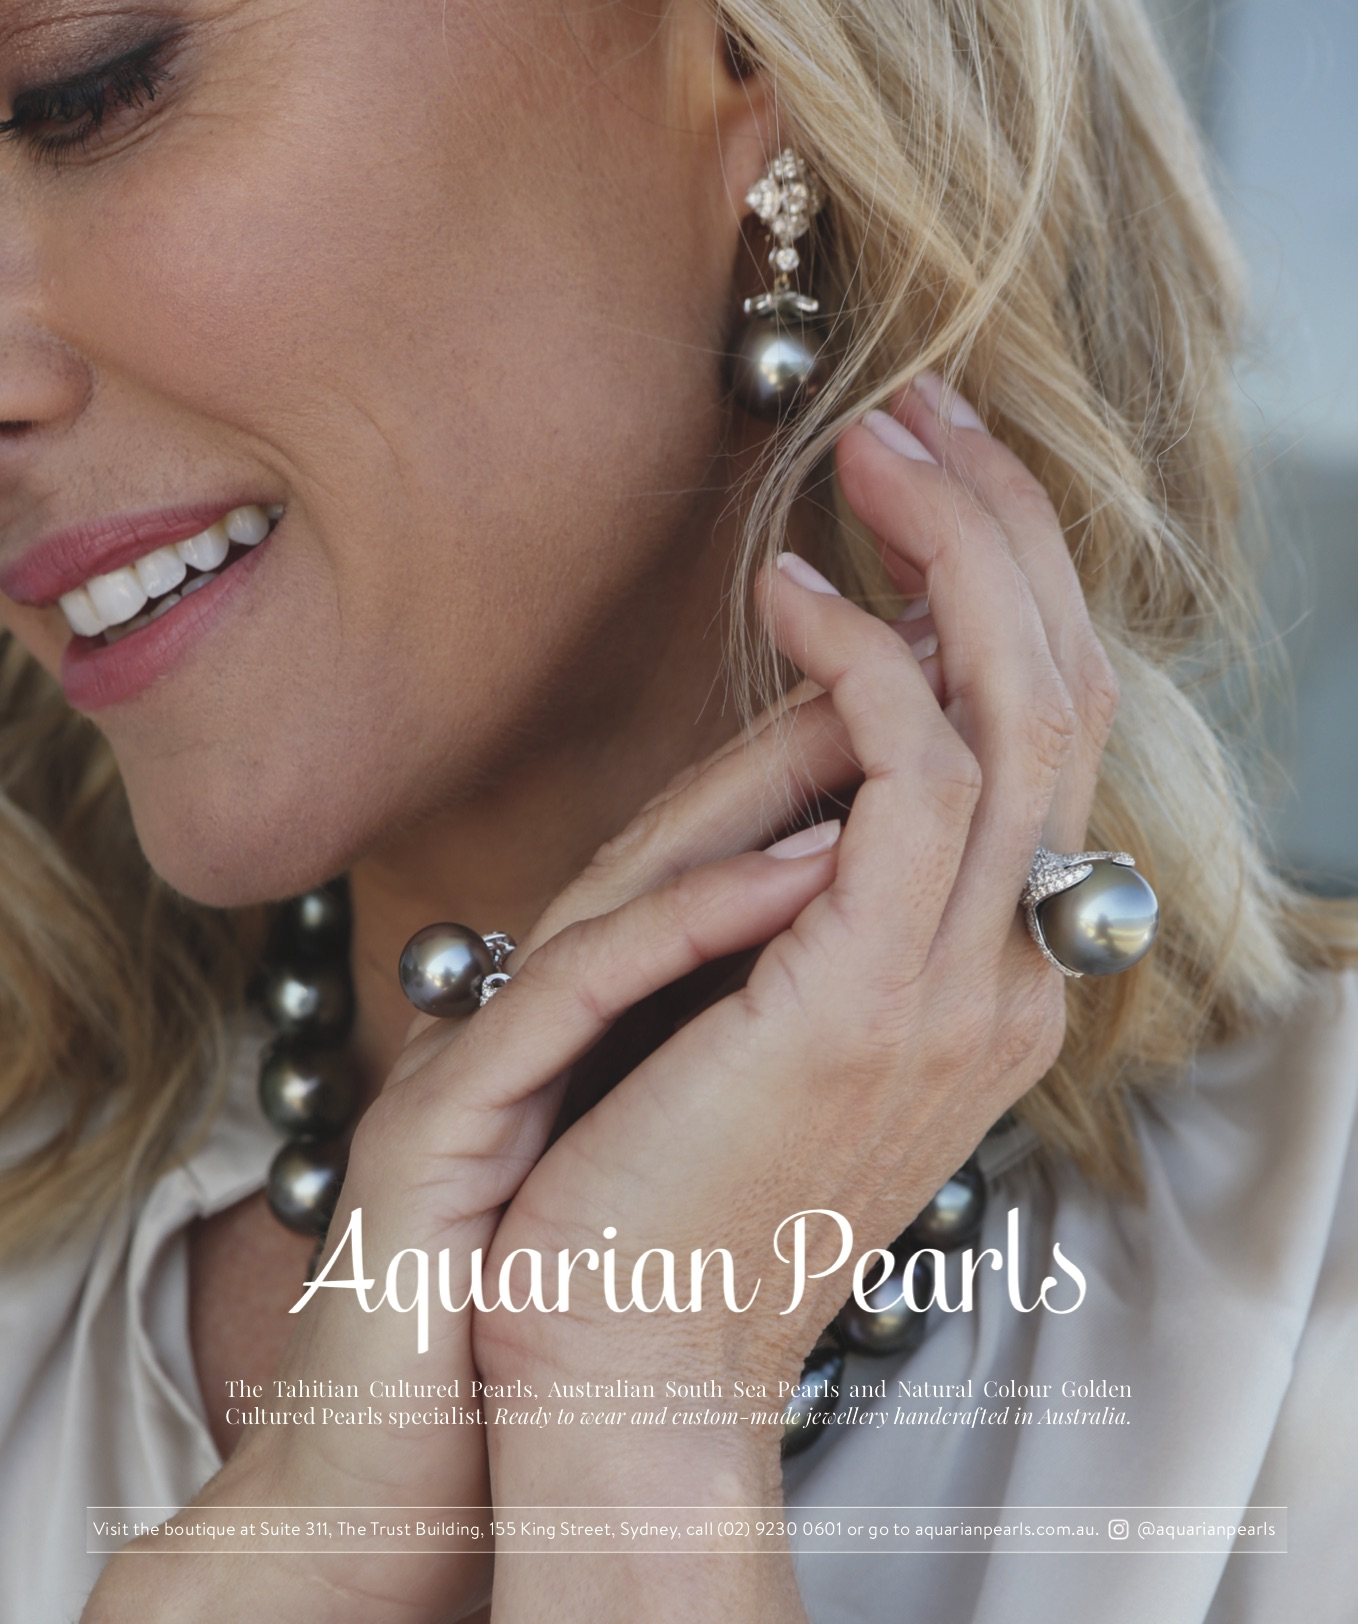 Acquarian Pearls for Vogue Magazine